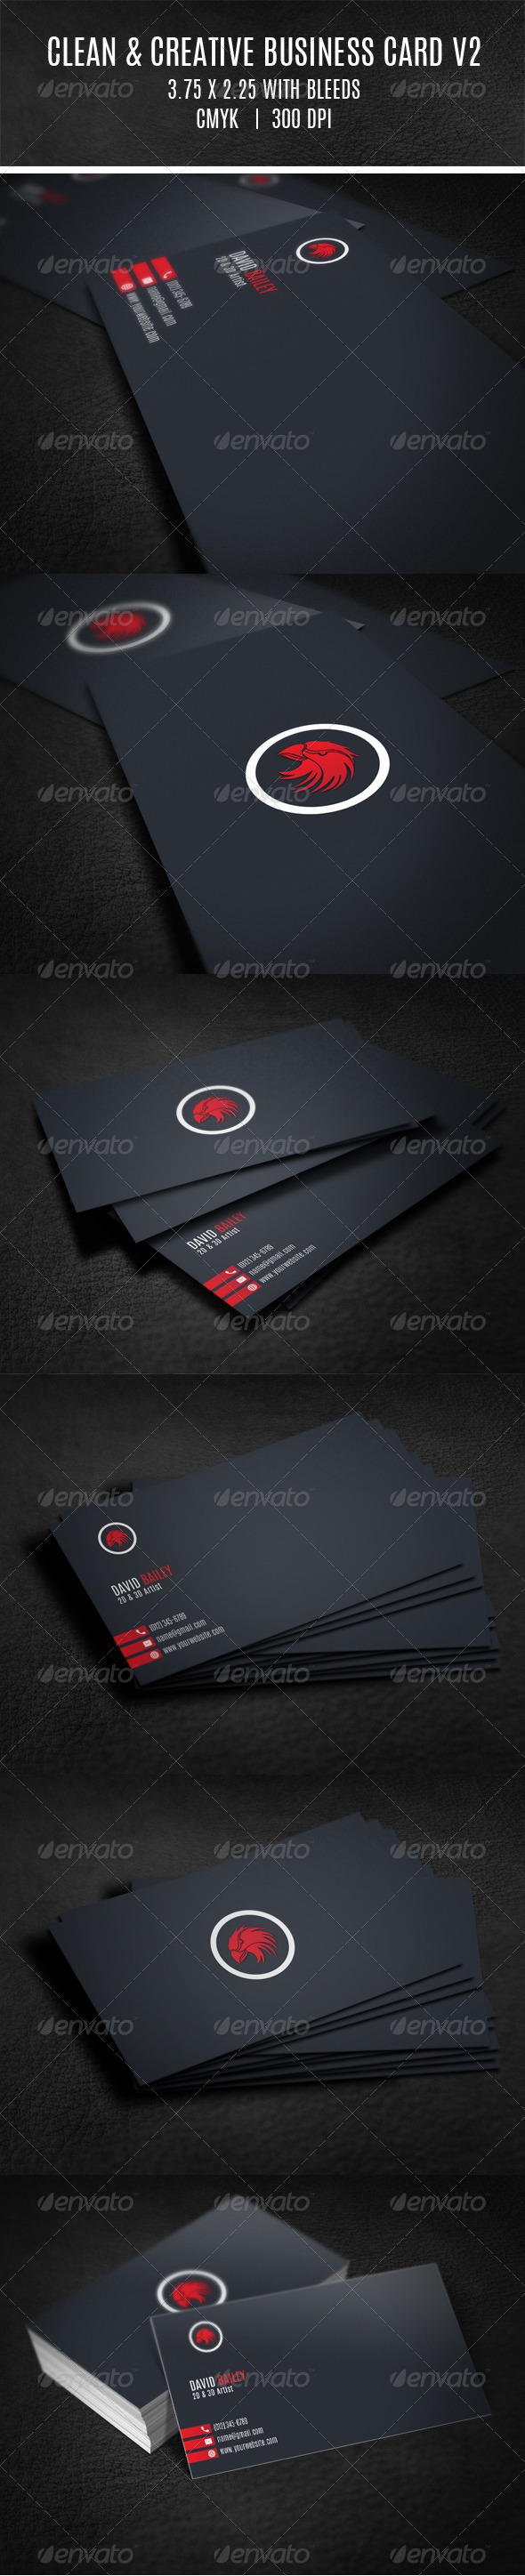 GraphicRiver Clean & Creative Business Card V2 8103099